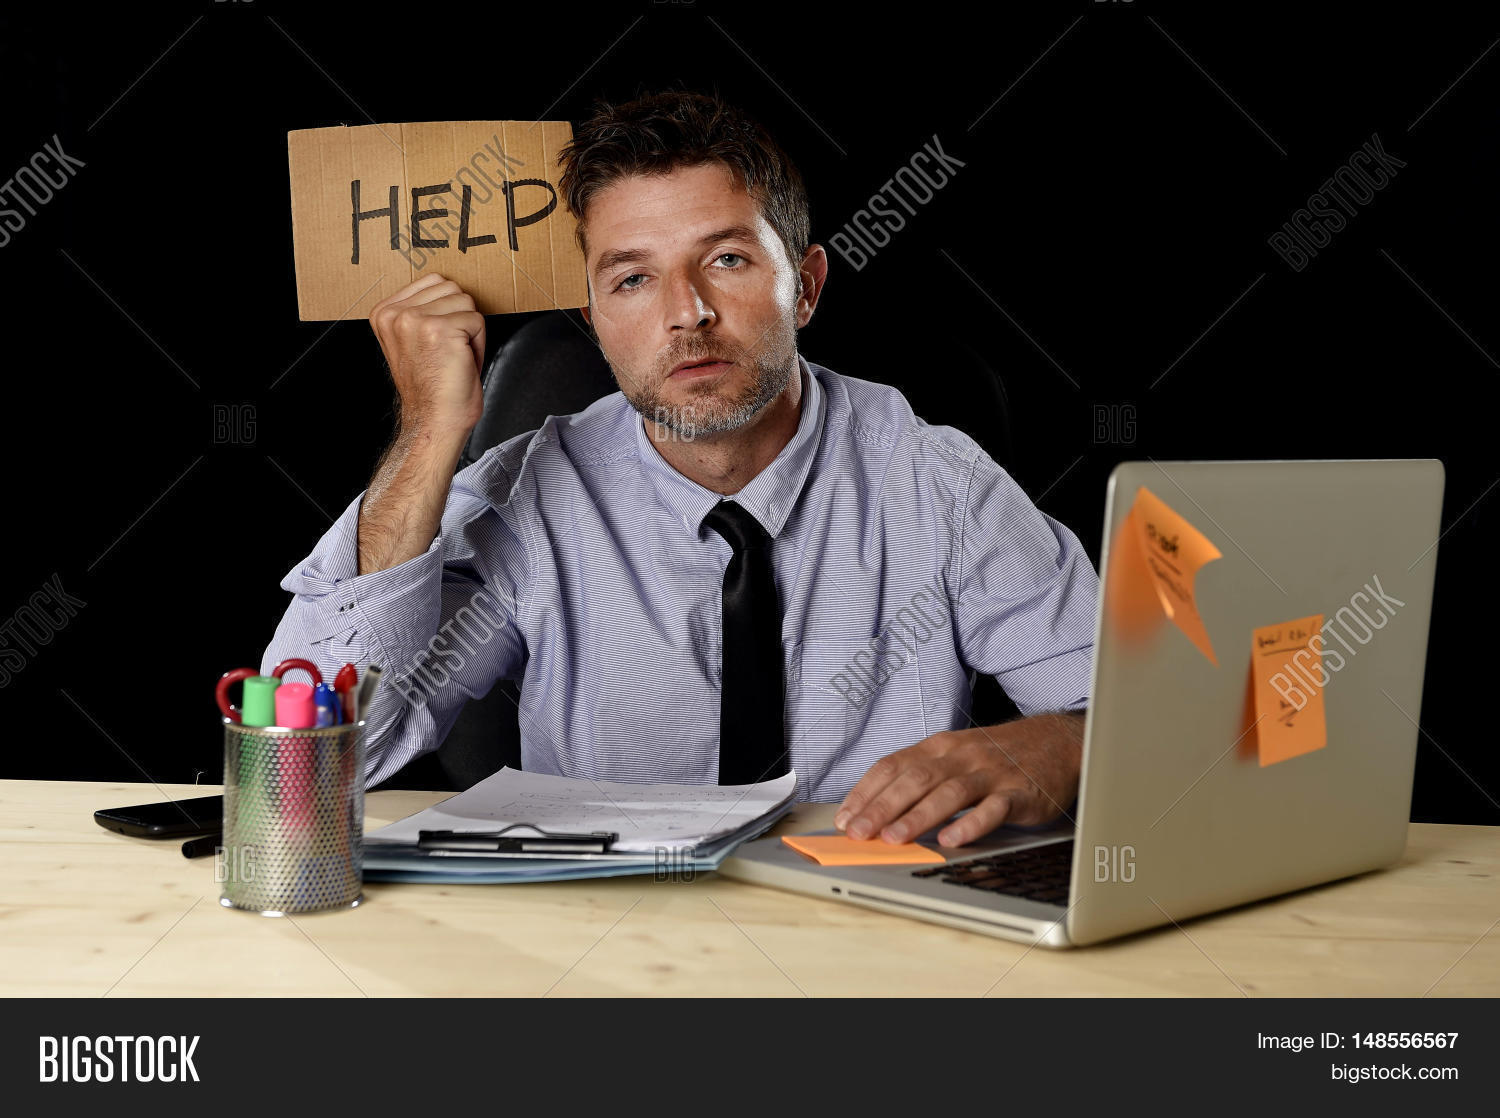 young desperate businessman suffering stress working at office young desperate businessman suffering stress working at office computer desk holding sign asking for help looking